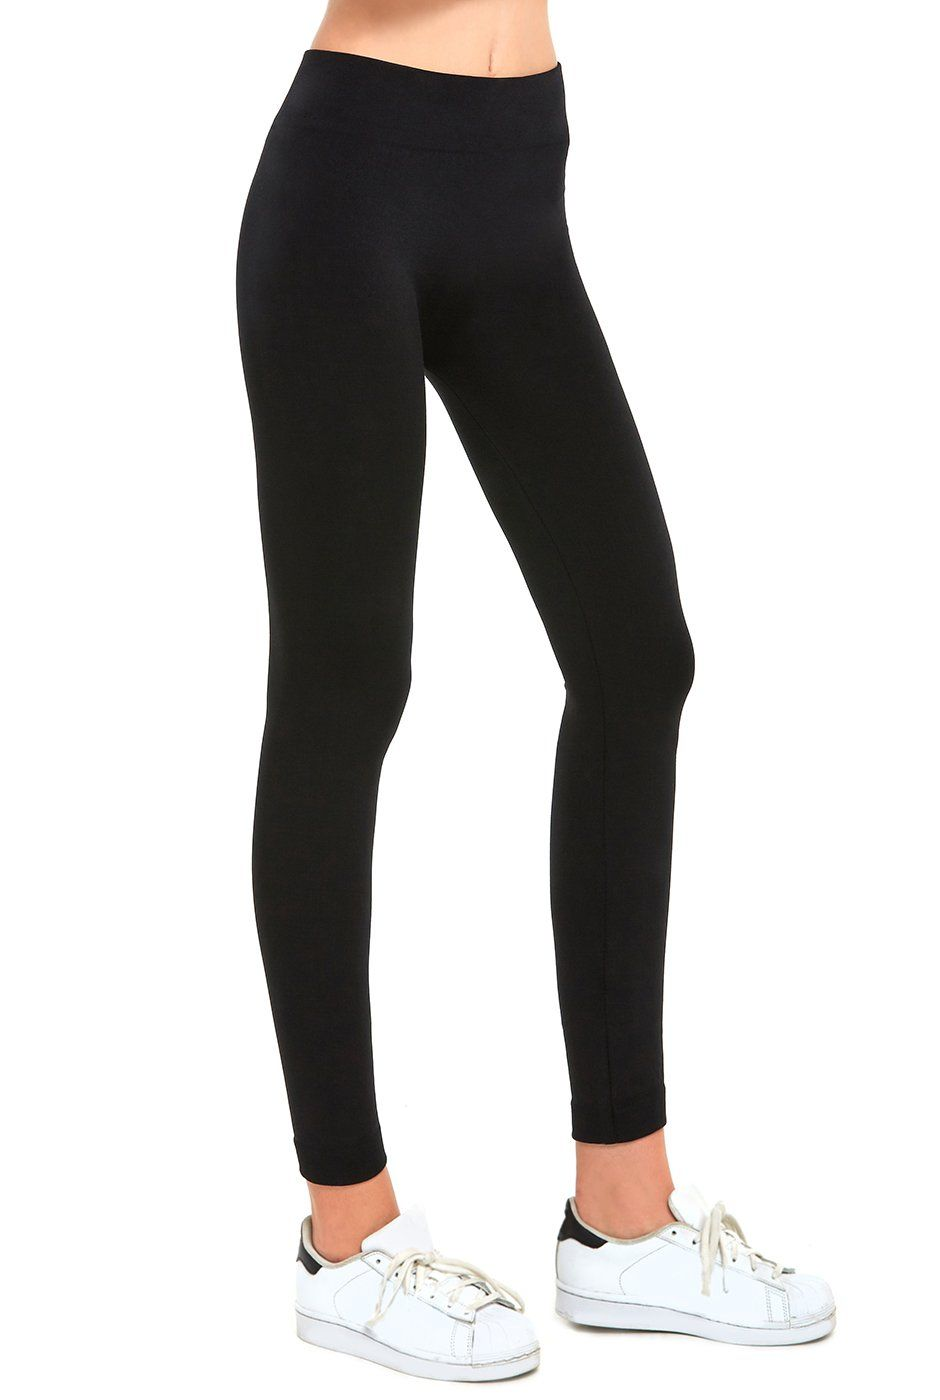 be43d5bb12c Mopas Teejoy Womens Seamless Fleece Leggings Black -- Check out the image  by visiting the link. (This is an affiliate link)